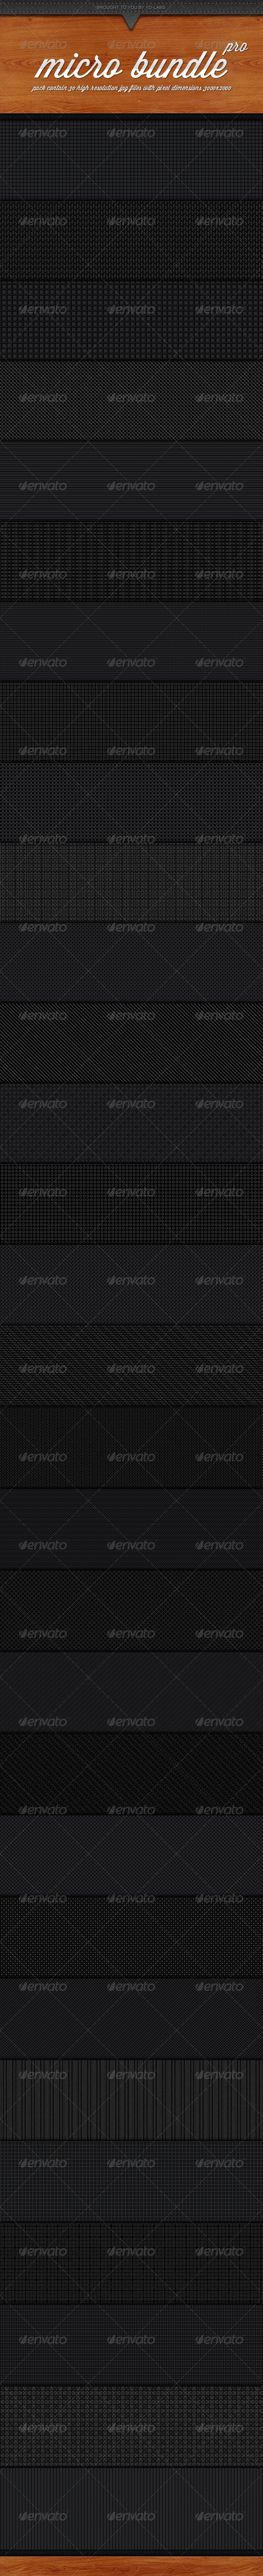 30 Micro Carbon Patterns Pro Bundle - Patterns Backgrounds